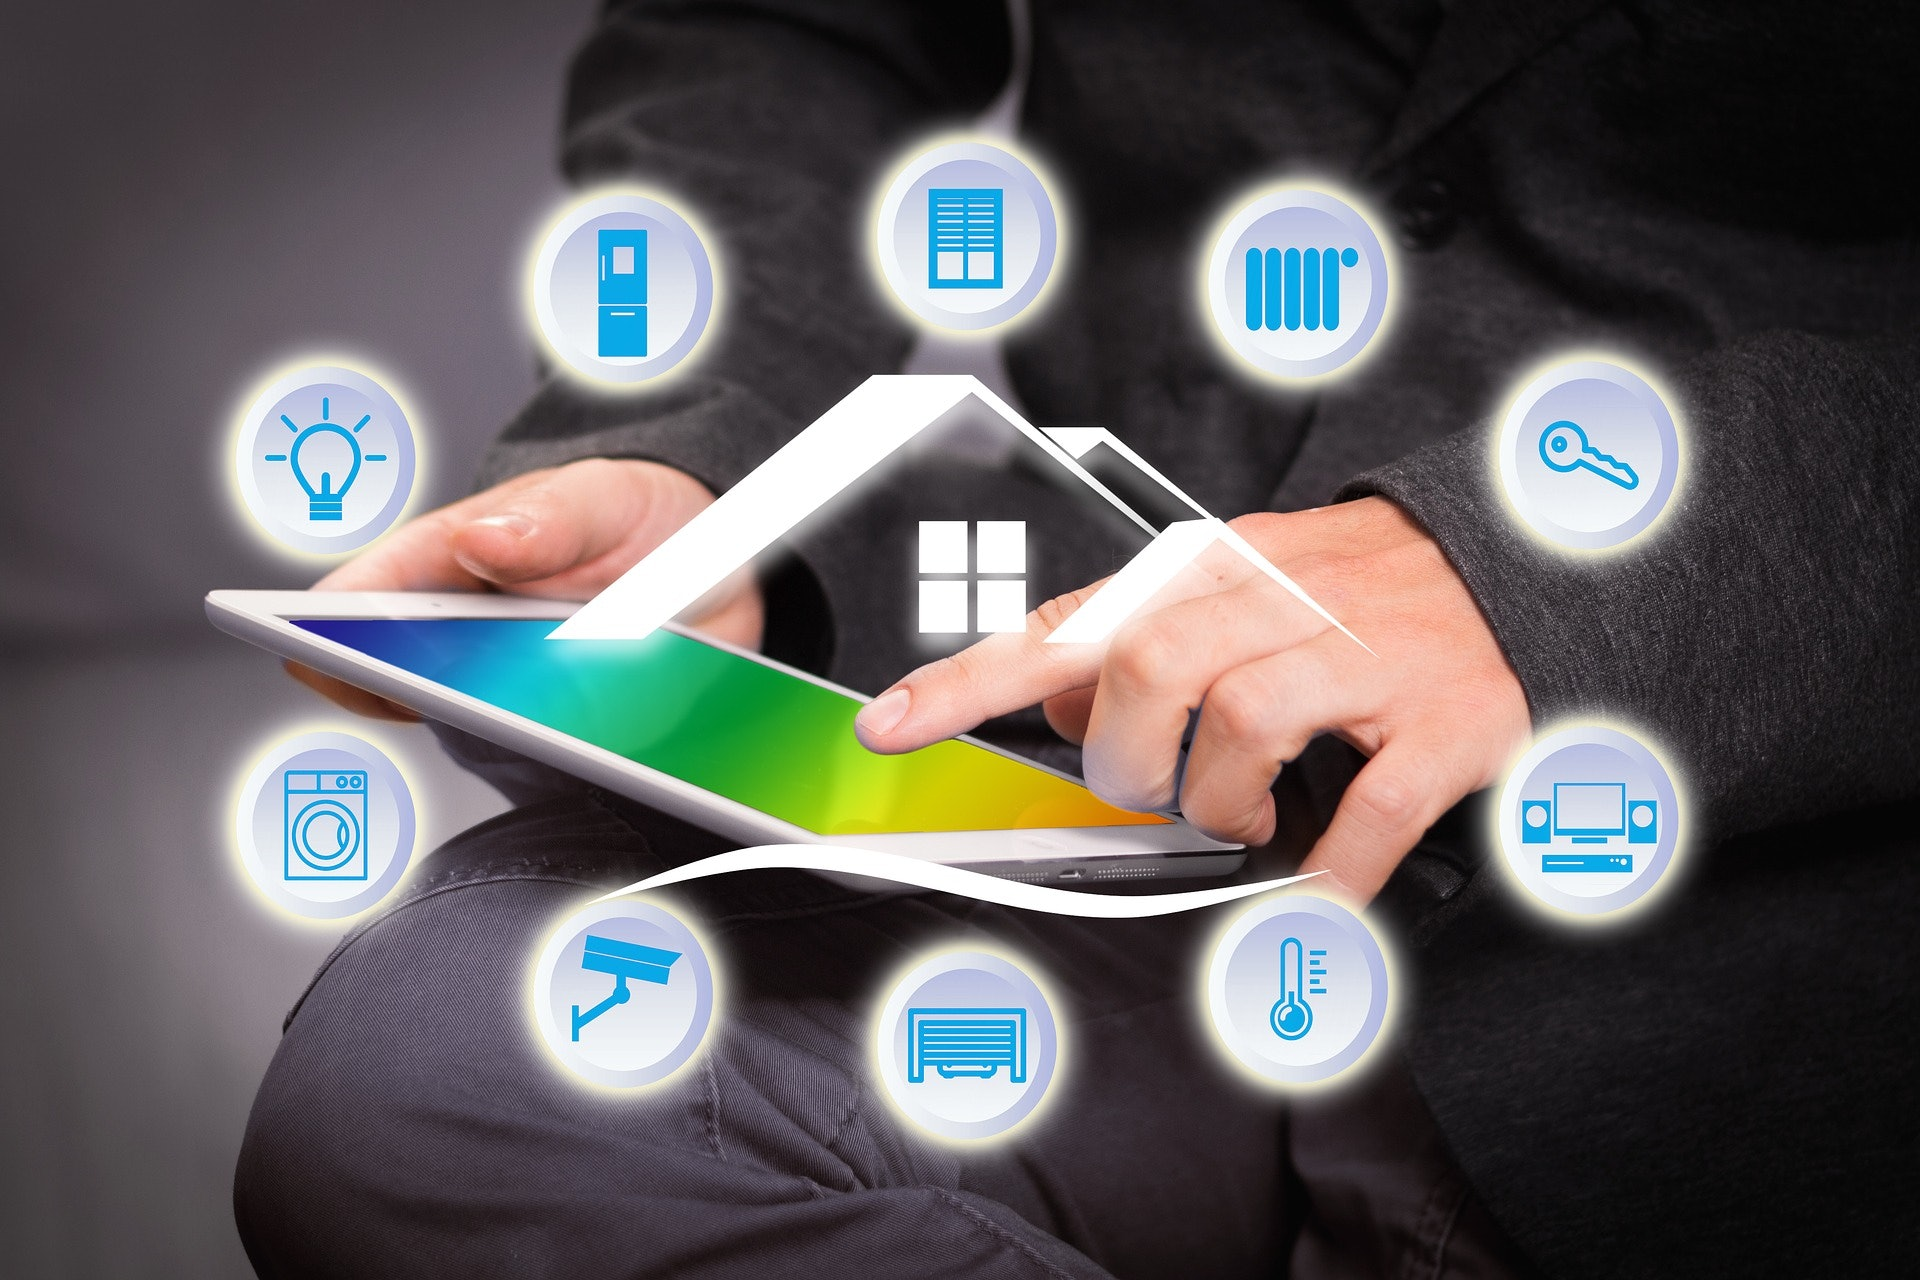 Smart home technologies may be vulnerable to hackers.